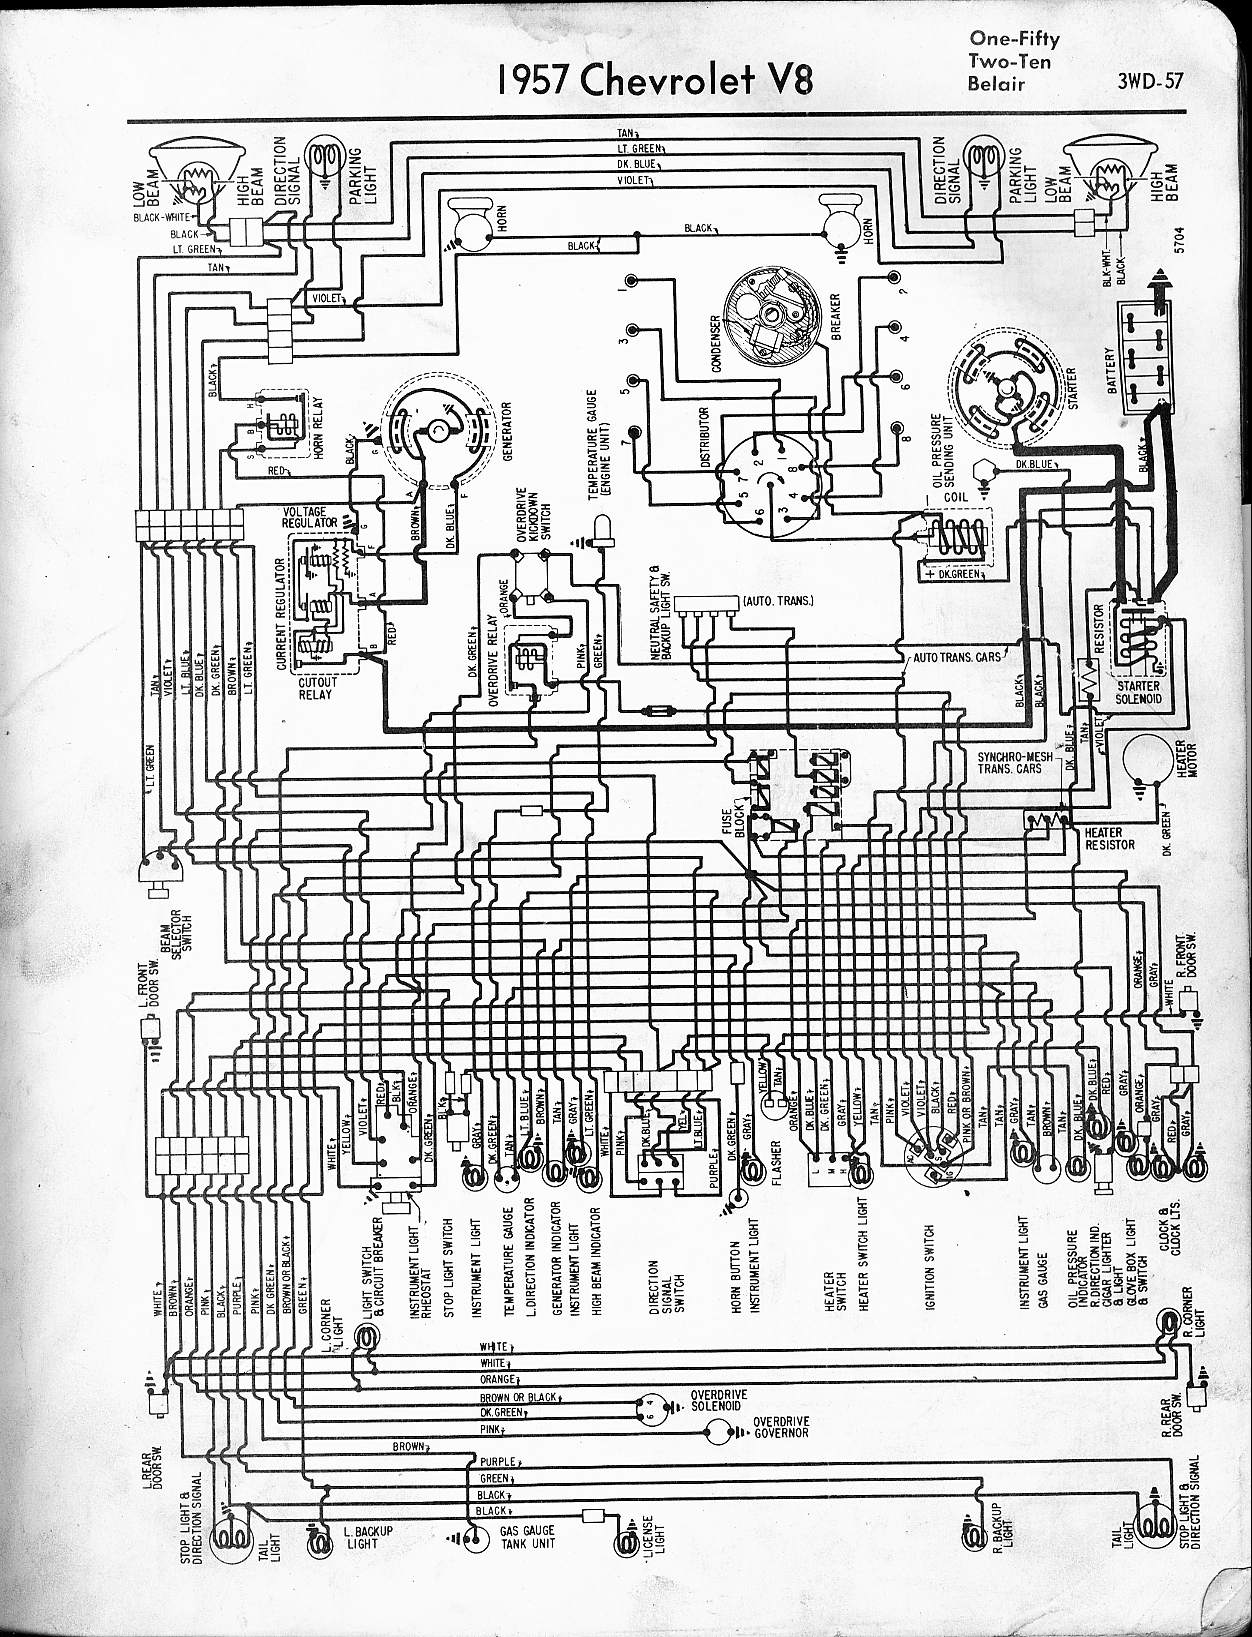 MWireChev57_3WD-057  Chevy Turn Signal Wiring Diagram on union pacific, for old jeep, street rod, polaris rzr,